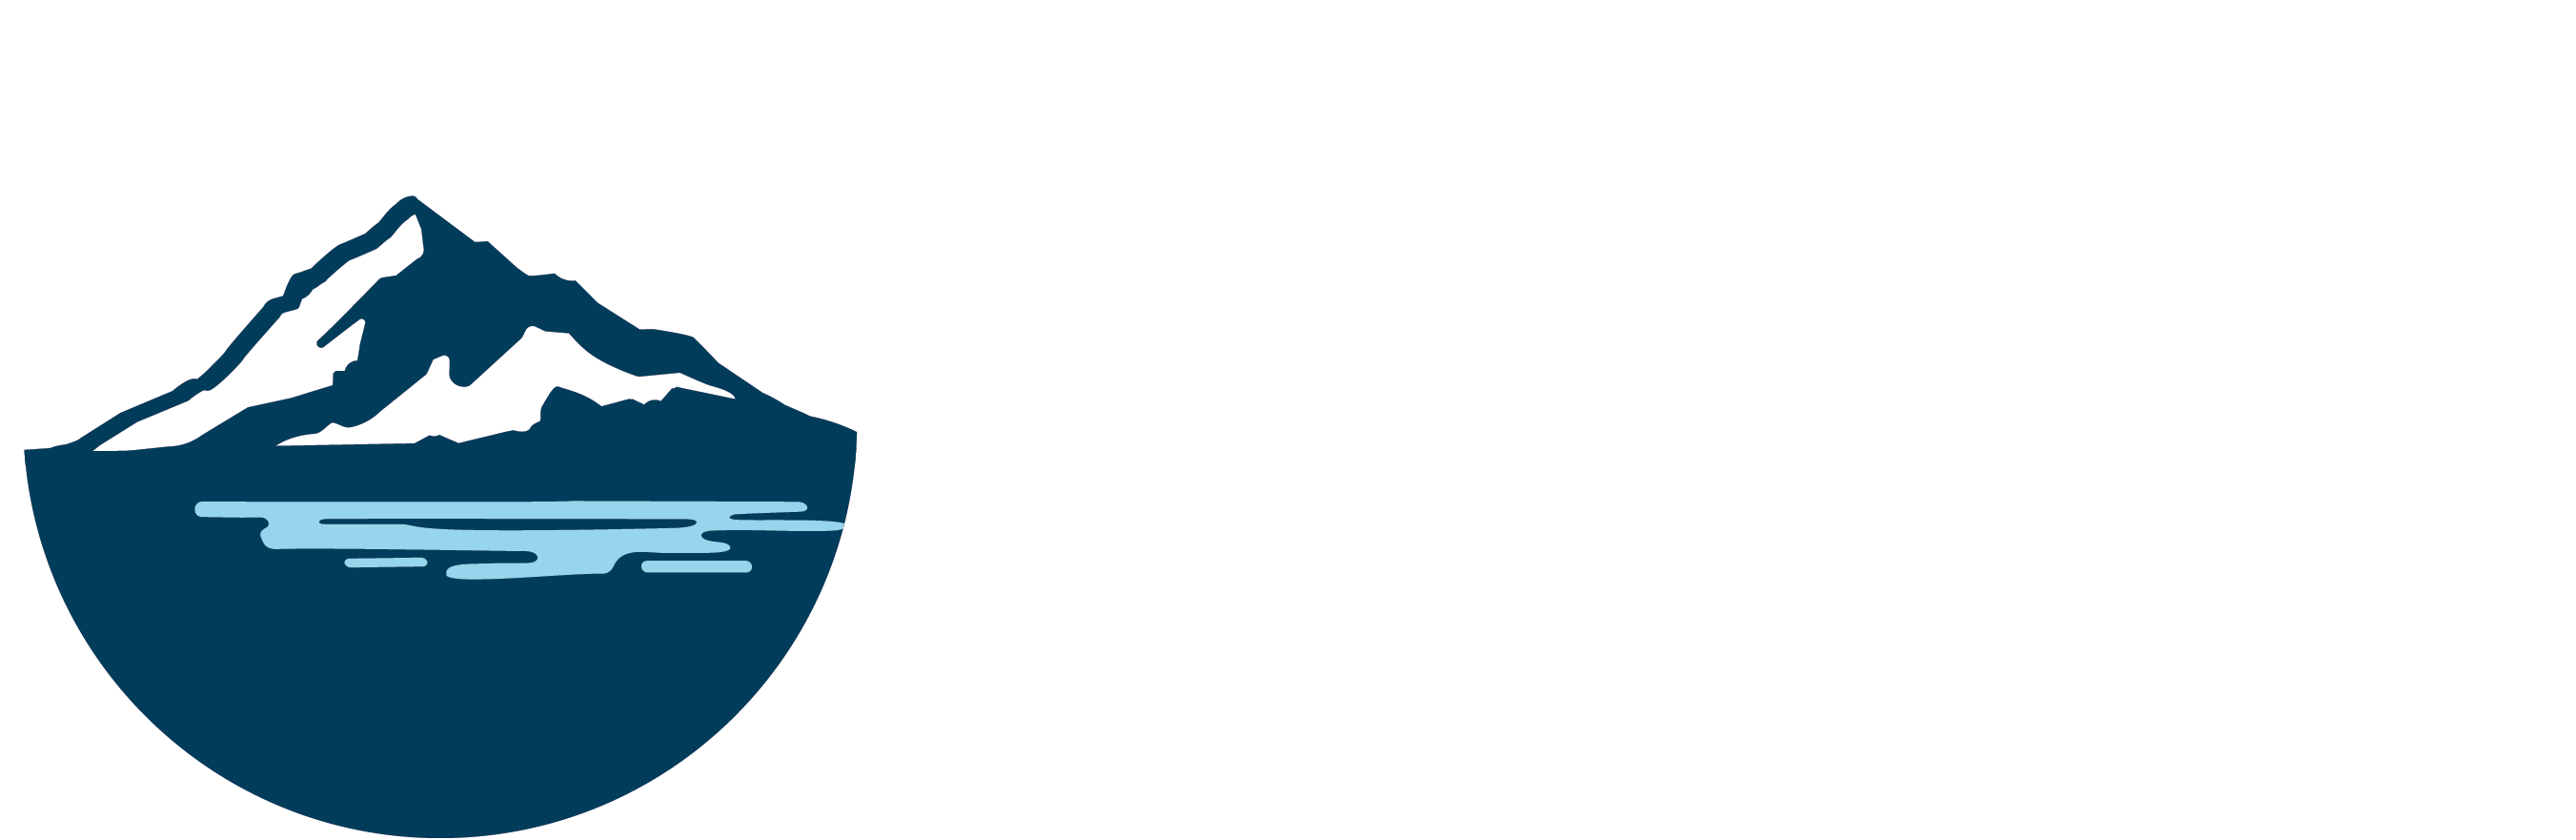 Big Mountain Law